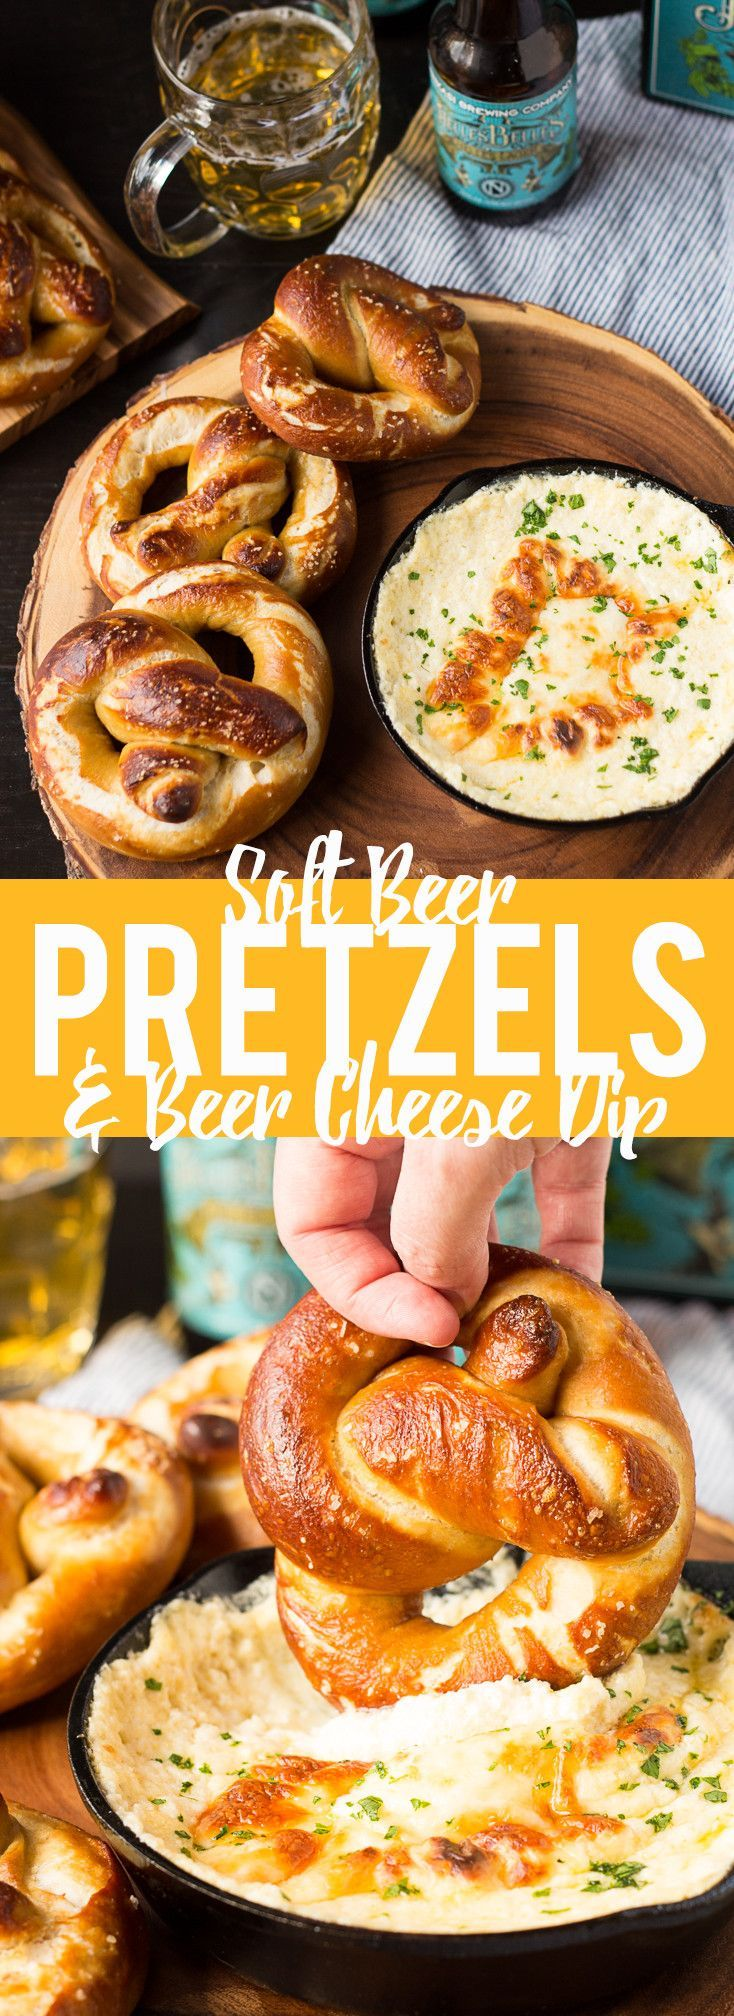 These Soft Beer Pretzels with Beer Cheese Dip are soft and fluffy pretzels with a cheesy dip. Perfect for game day, parties or any time you need a snack.